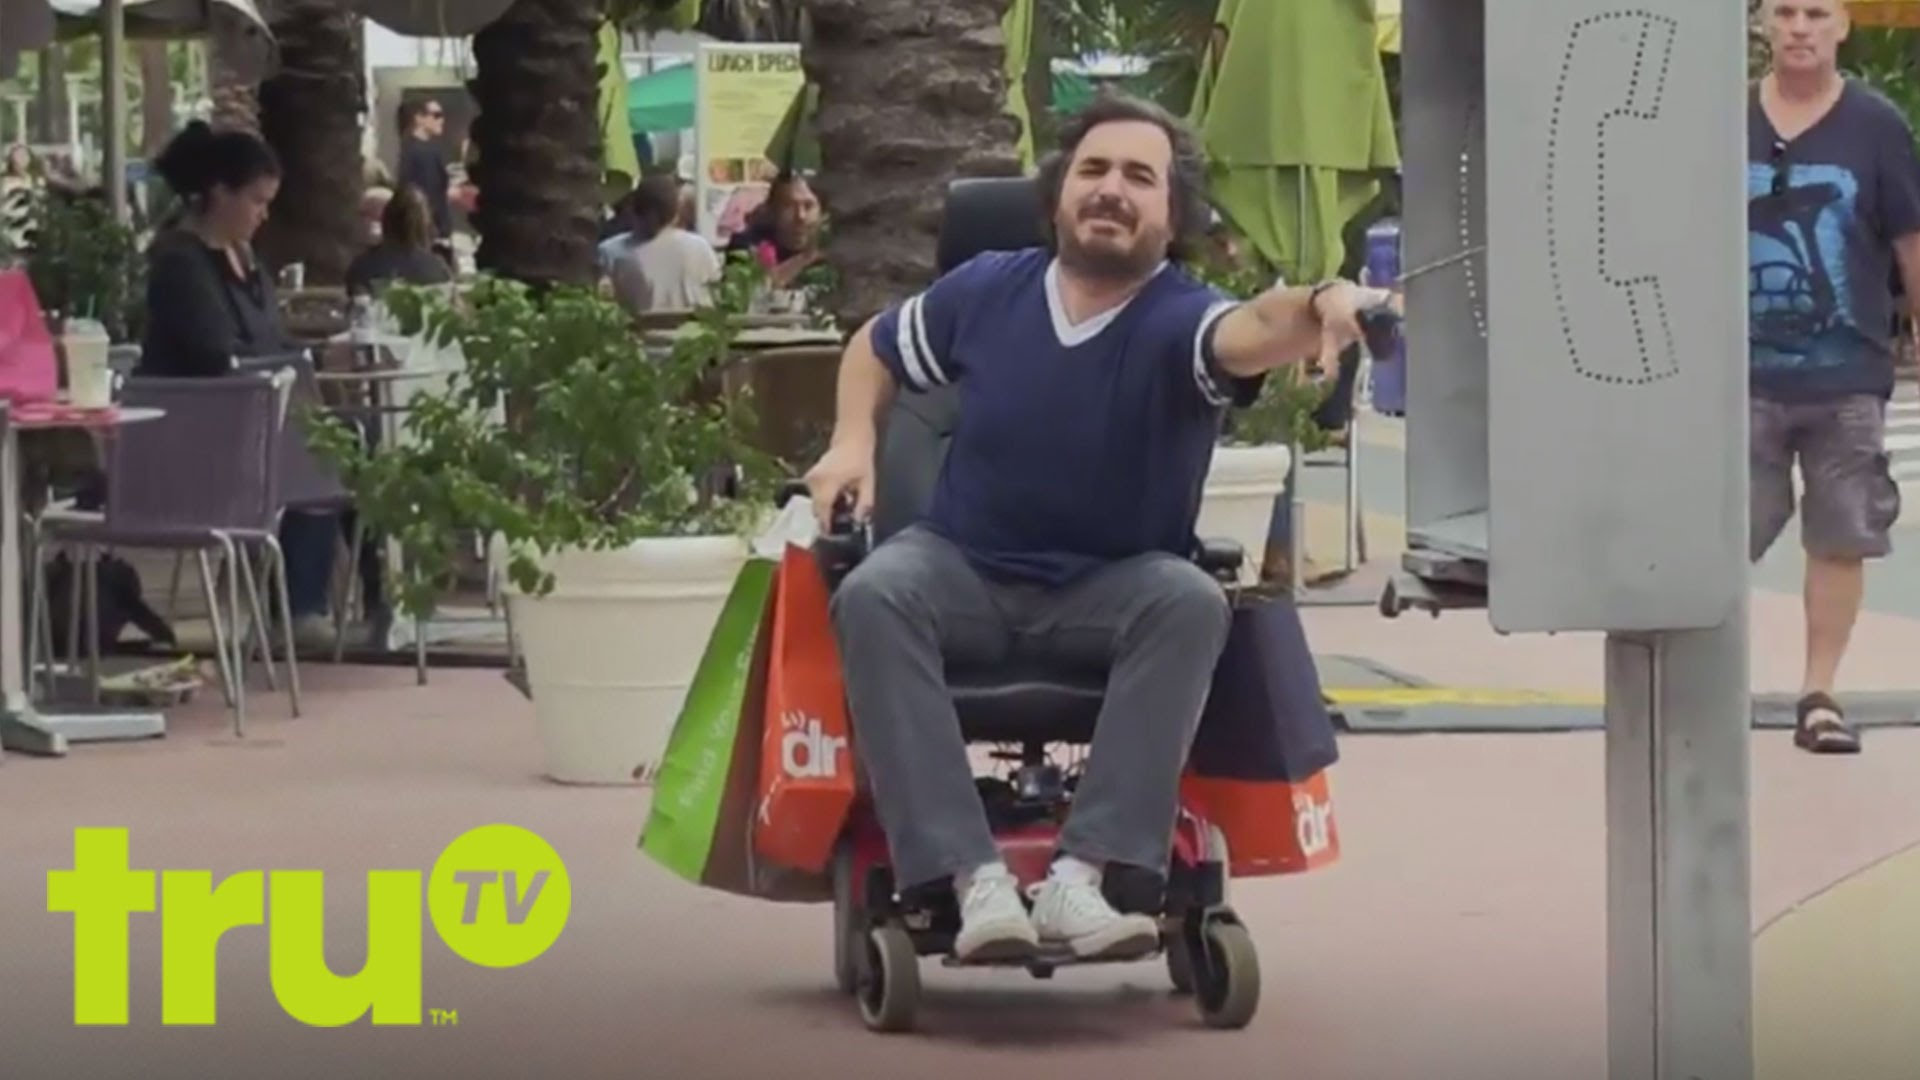 Impractical jokers schedule dates events and tickets axs 4 best moments from impractical jokers as comedy troupe returns for season 4 m4hsunfo